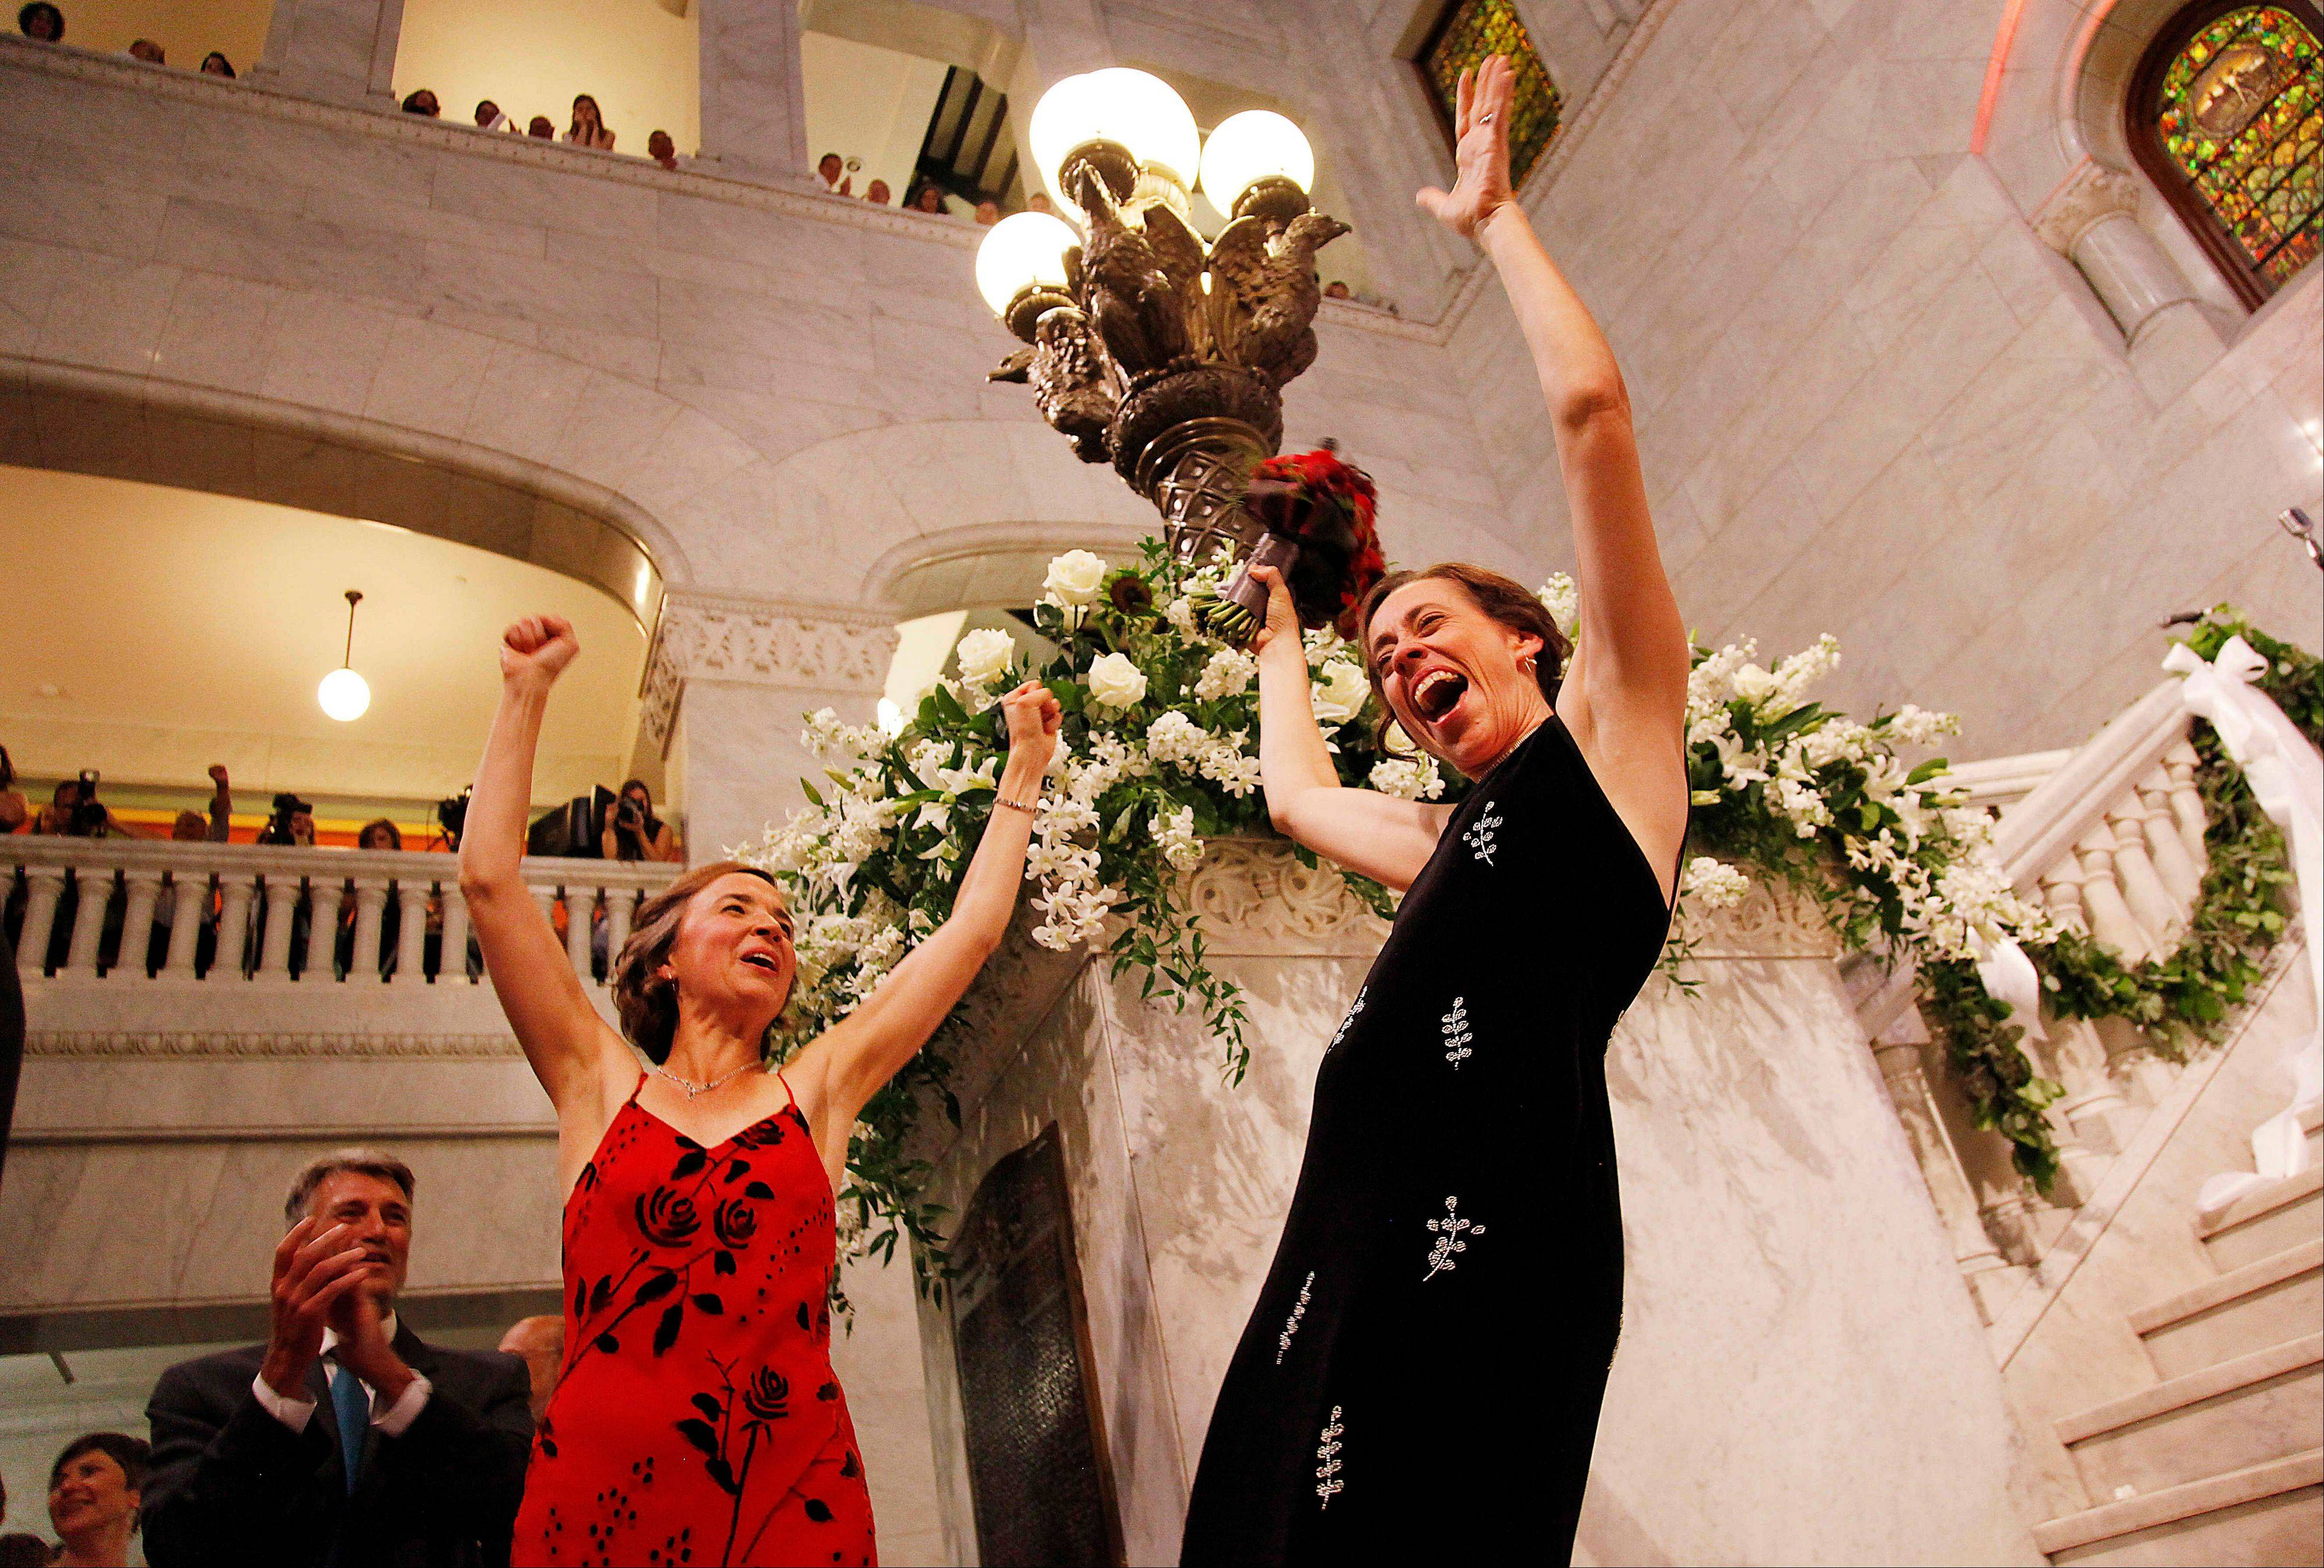 Margaret Miles, right, celebrates with wife Cathy ten Broeke, left, after they were married at the Minneapolis Freedom to Marry Celebration, Thursday at the Minneapolis City Hall.